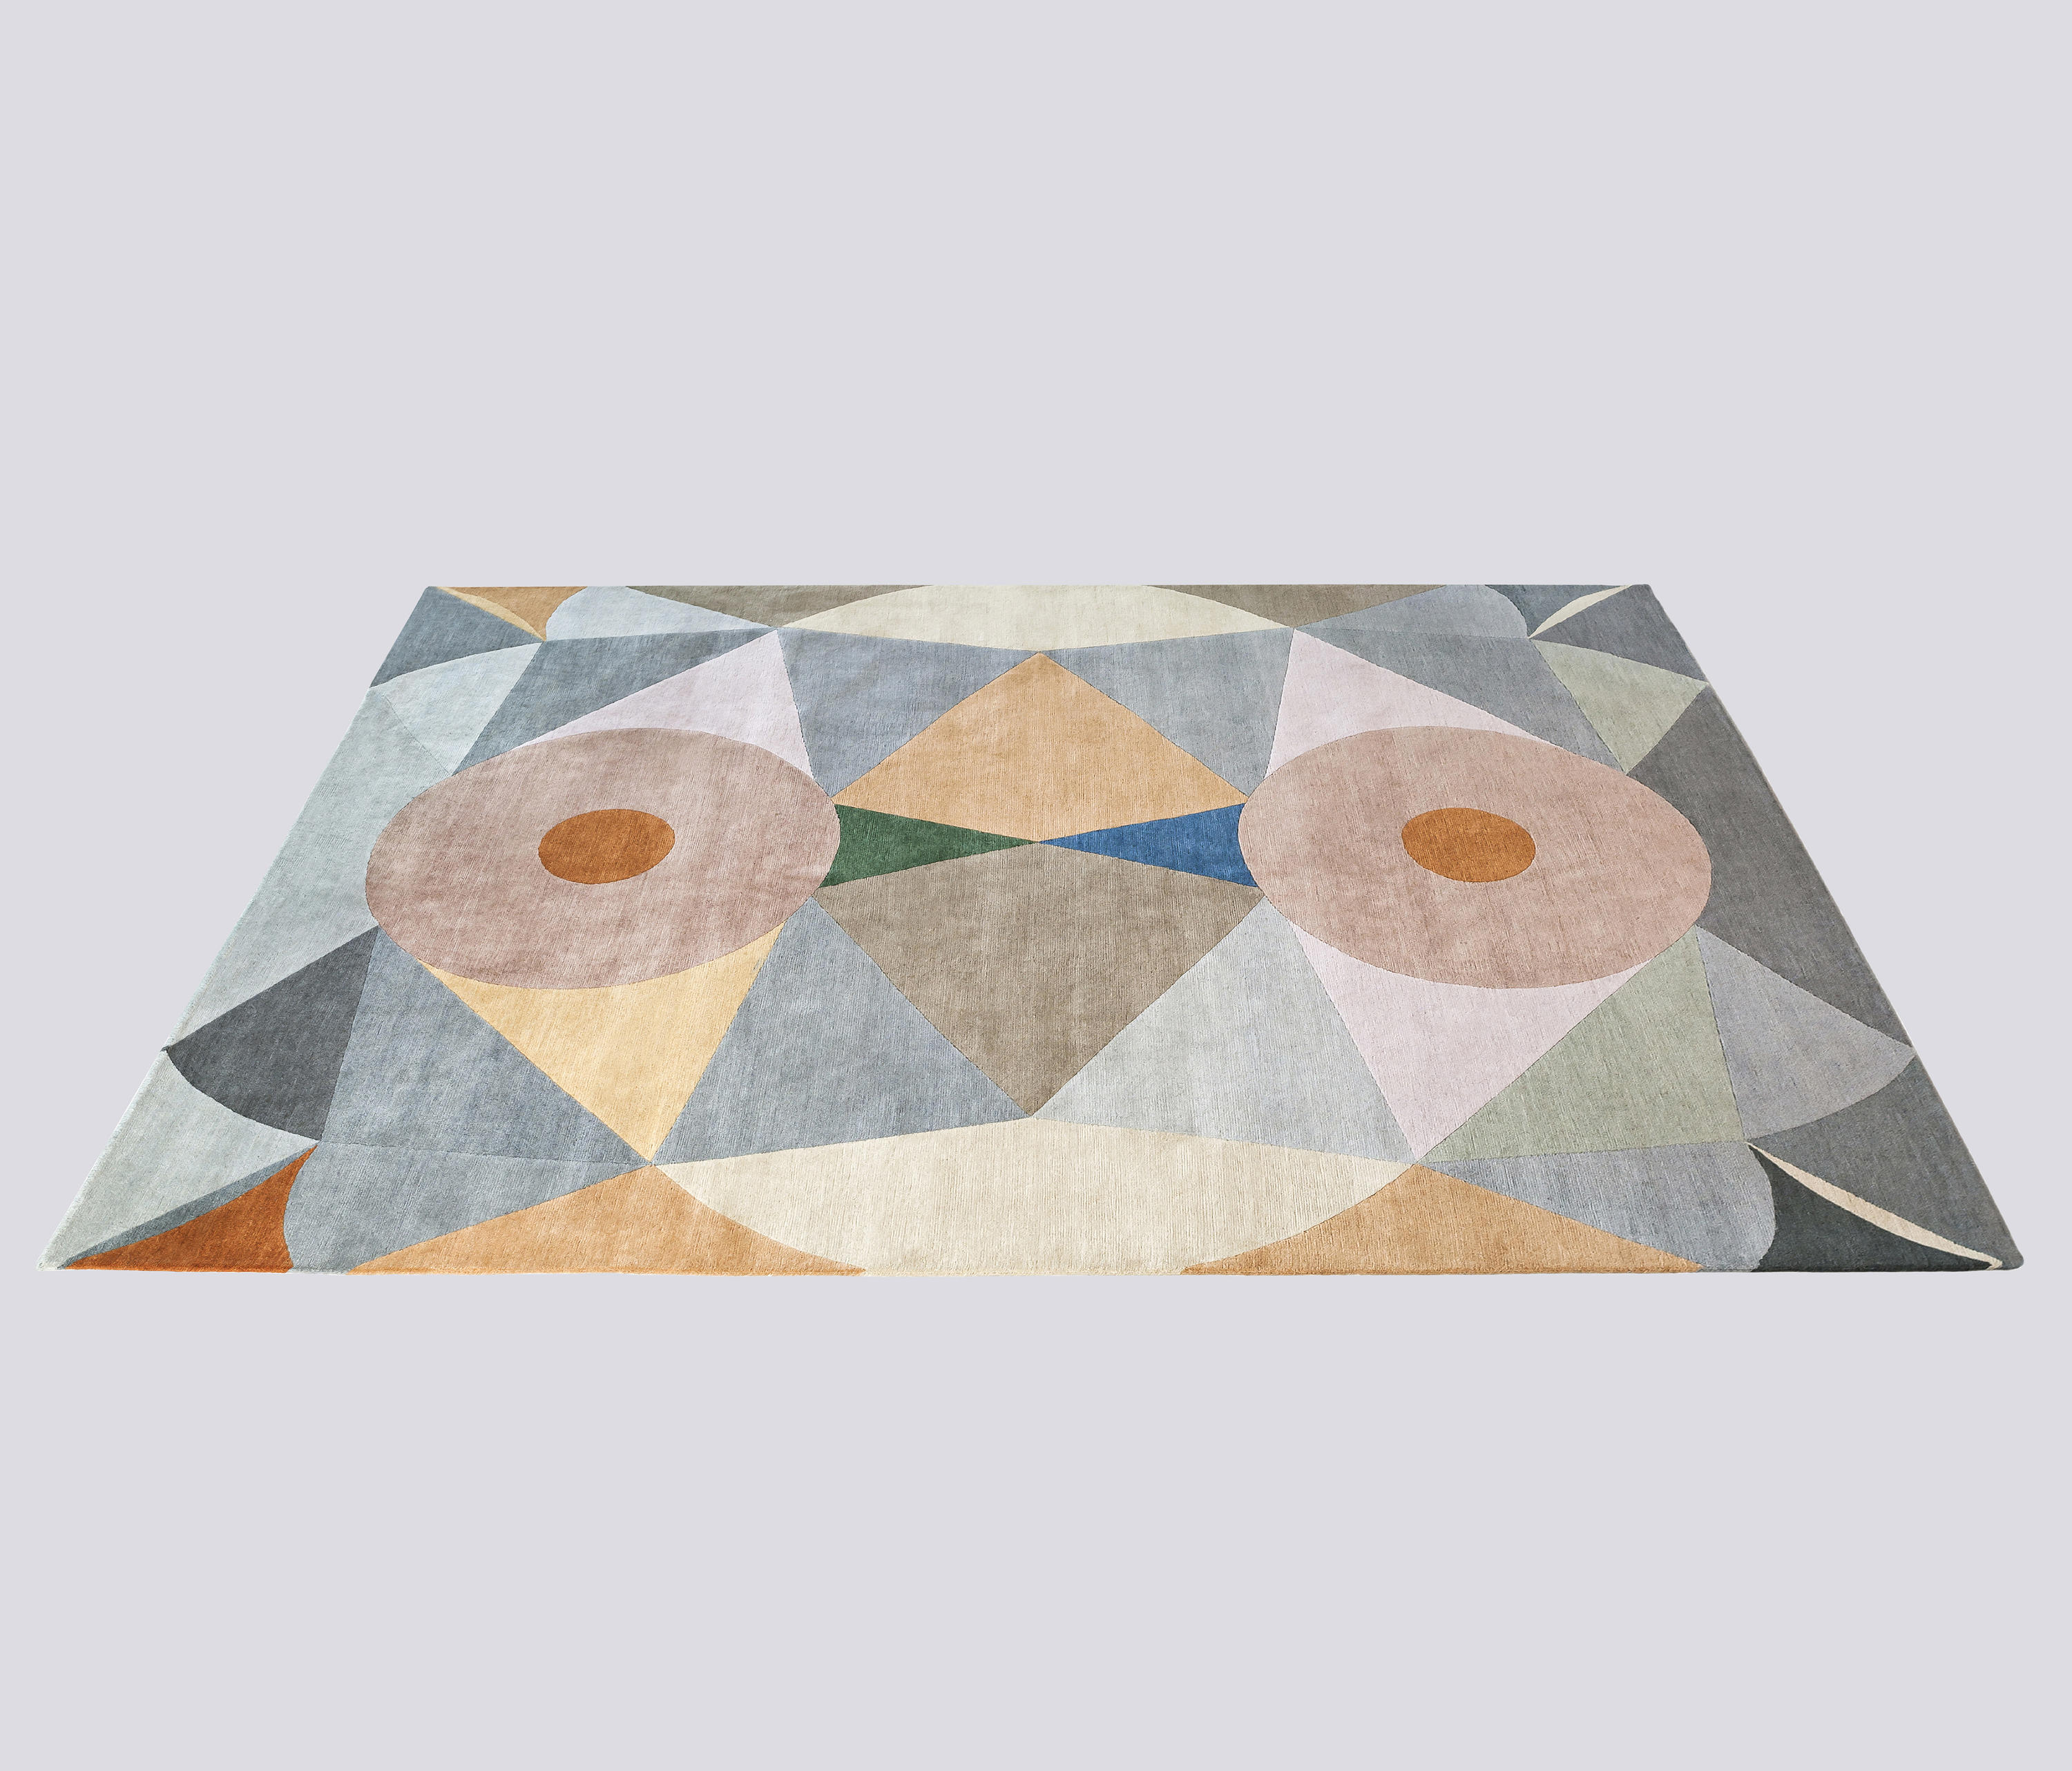 Spazio Italiano San Francisco rituale - rugs from tacchini italia | architonic